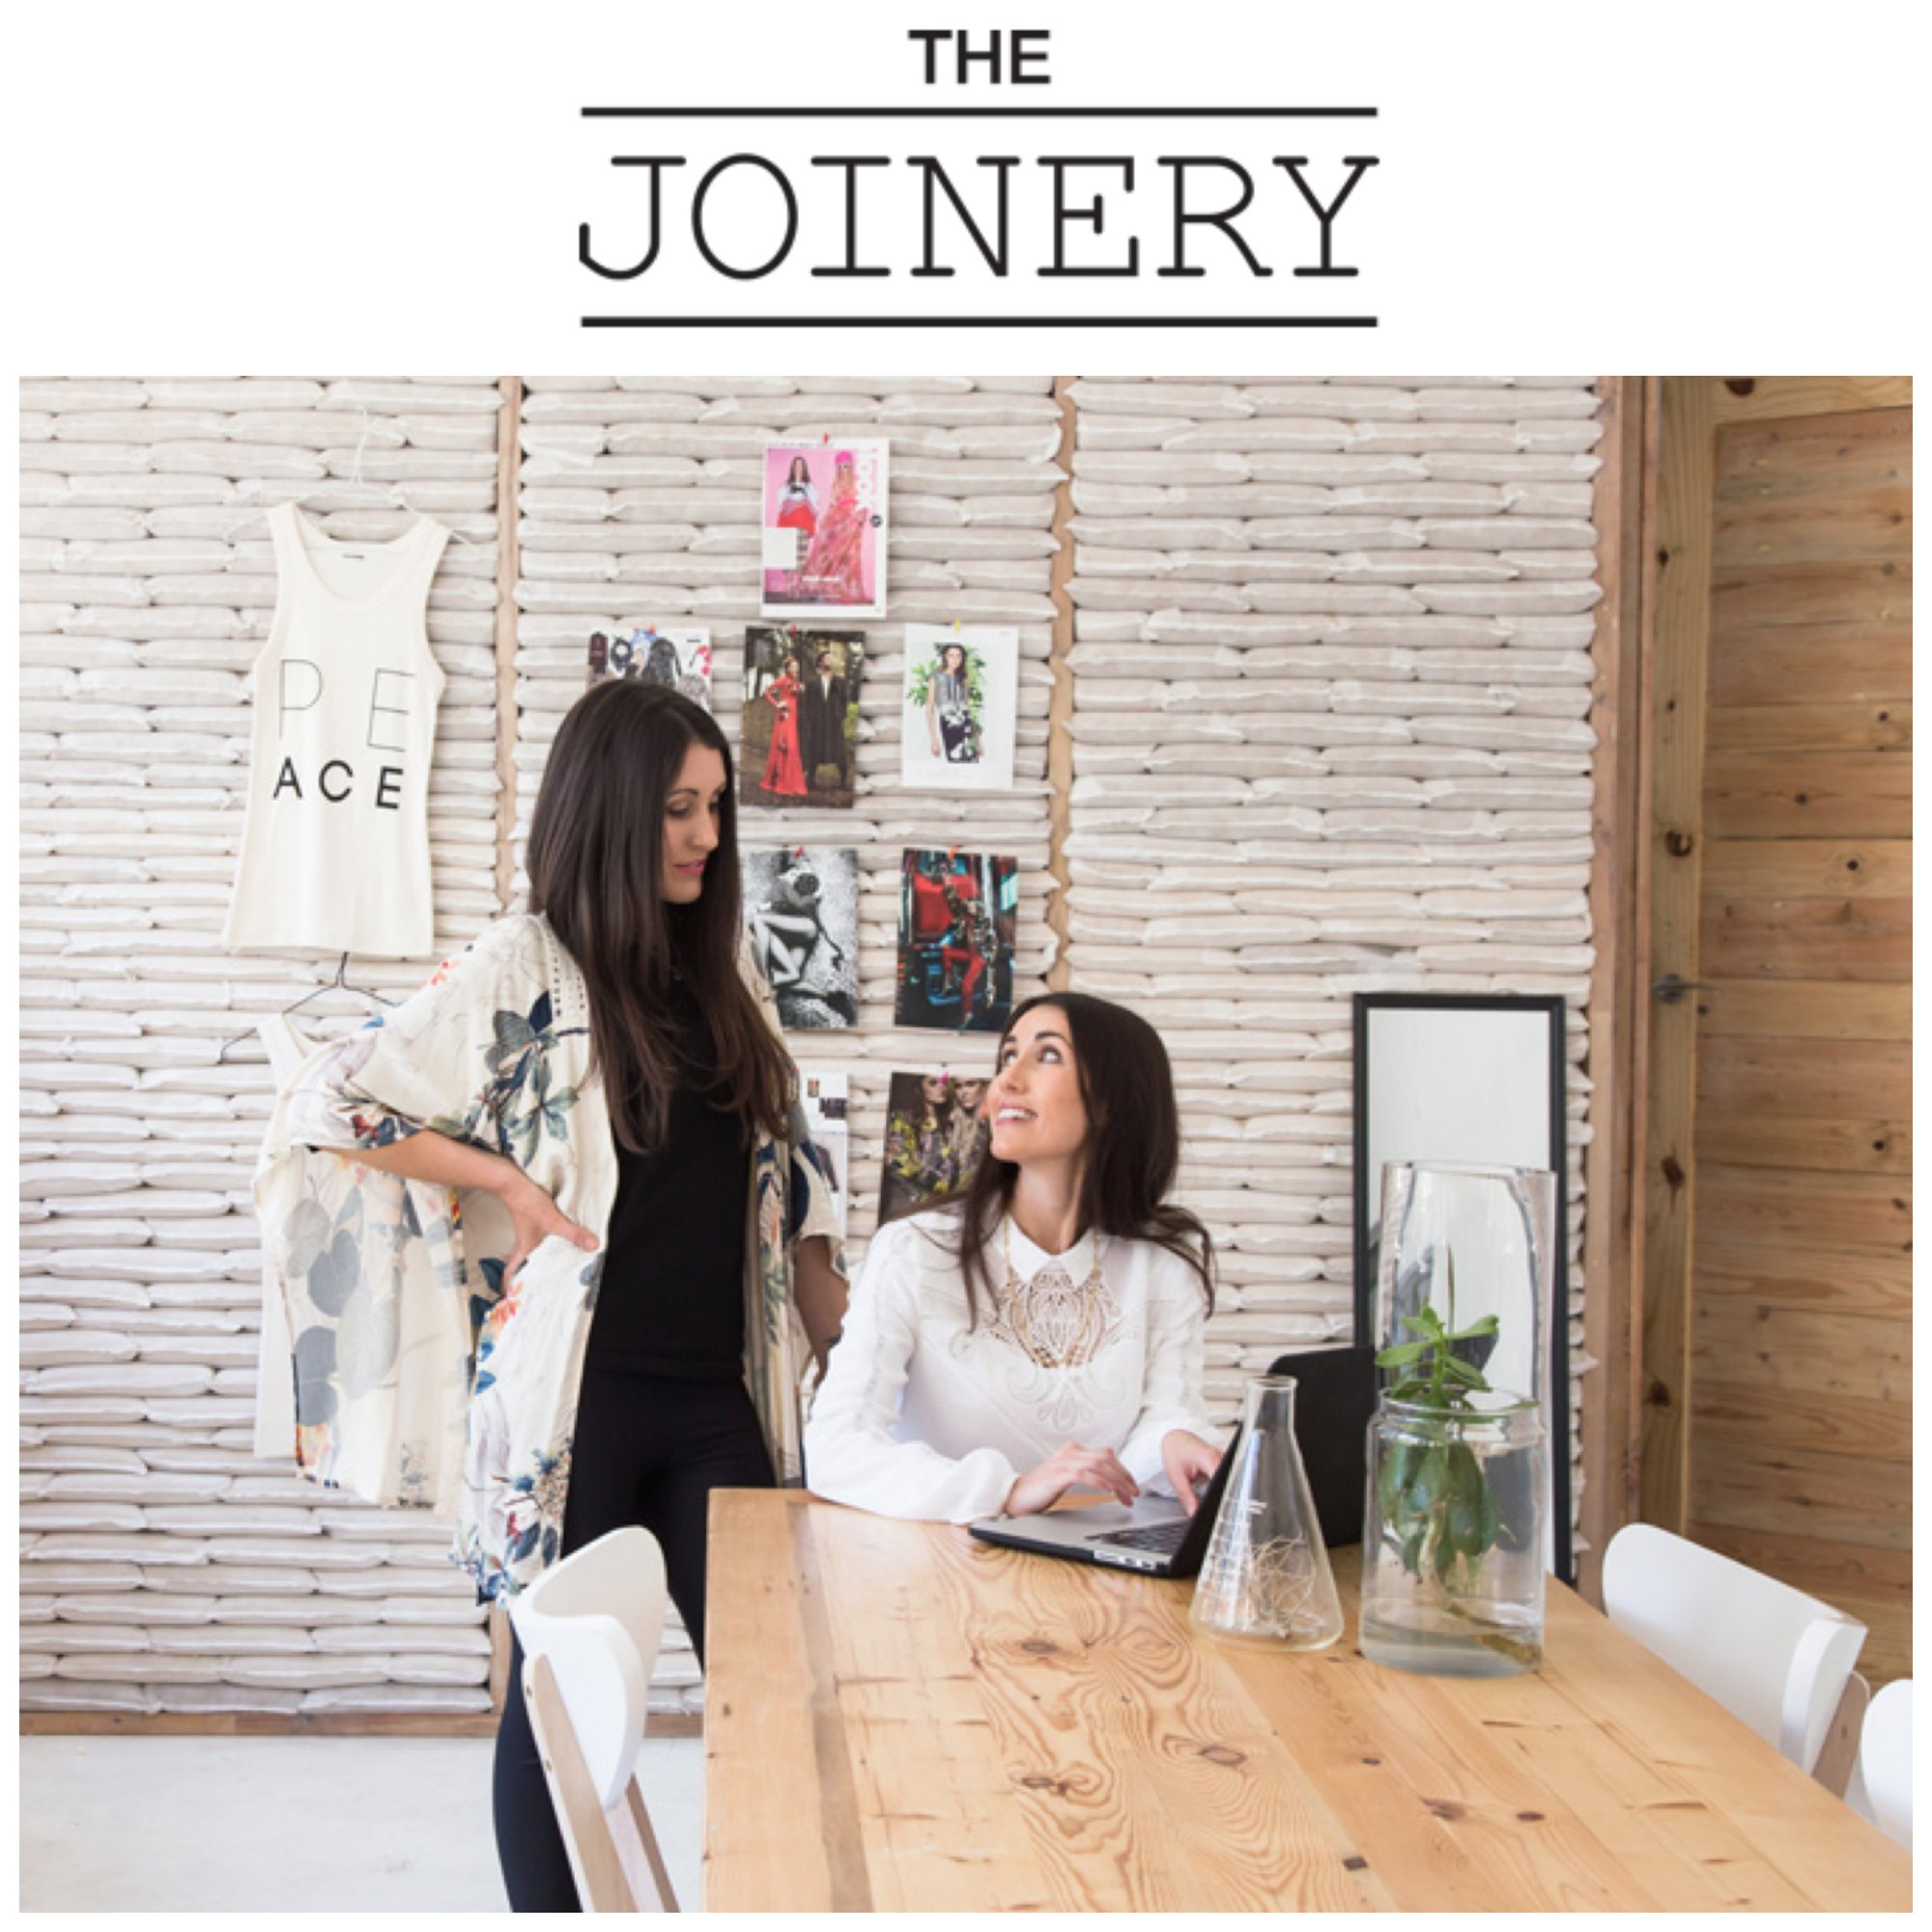 TheJoinery-Collage.jpg